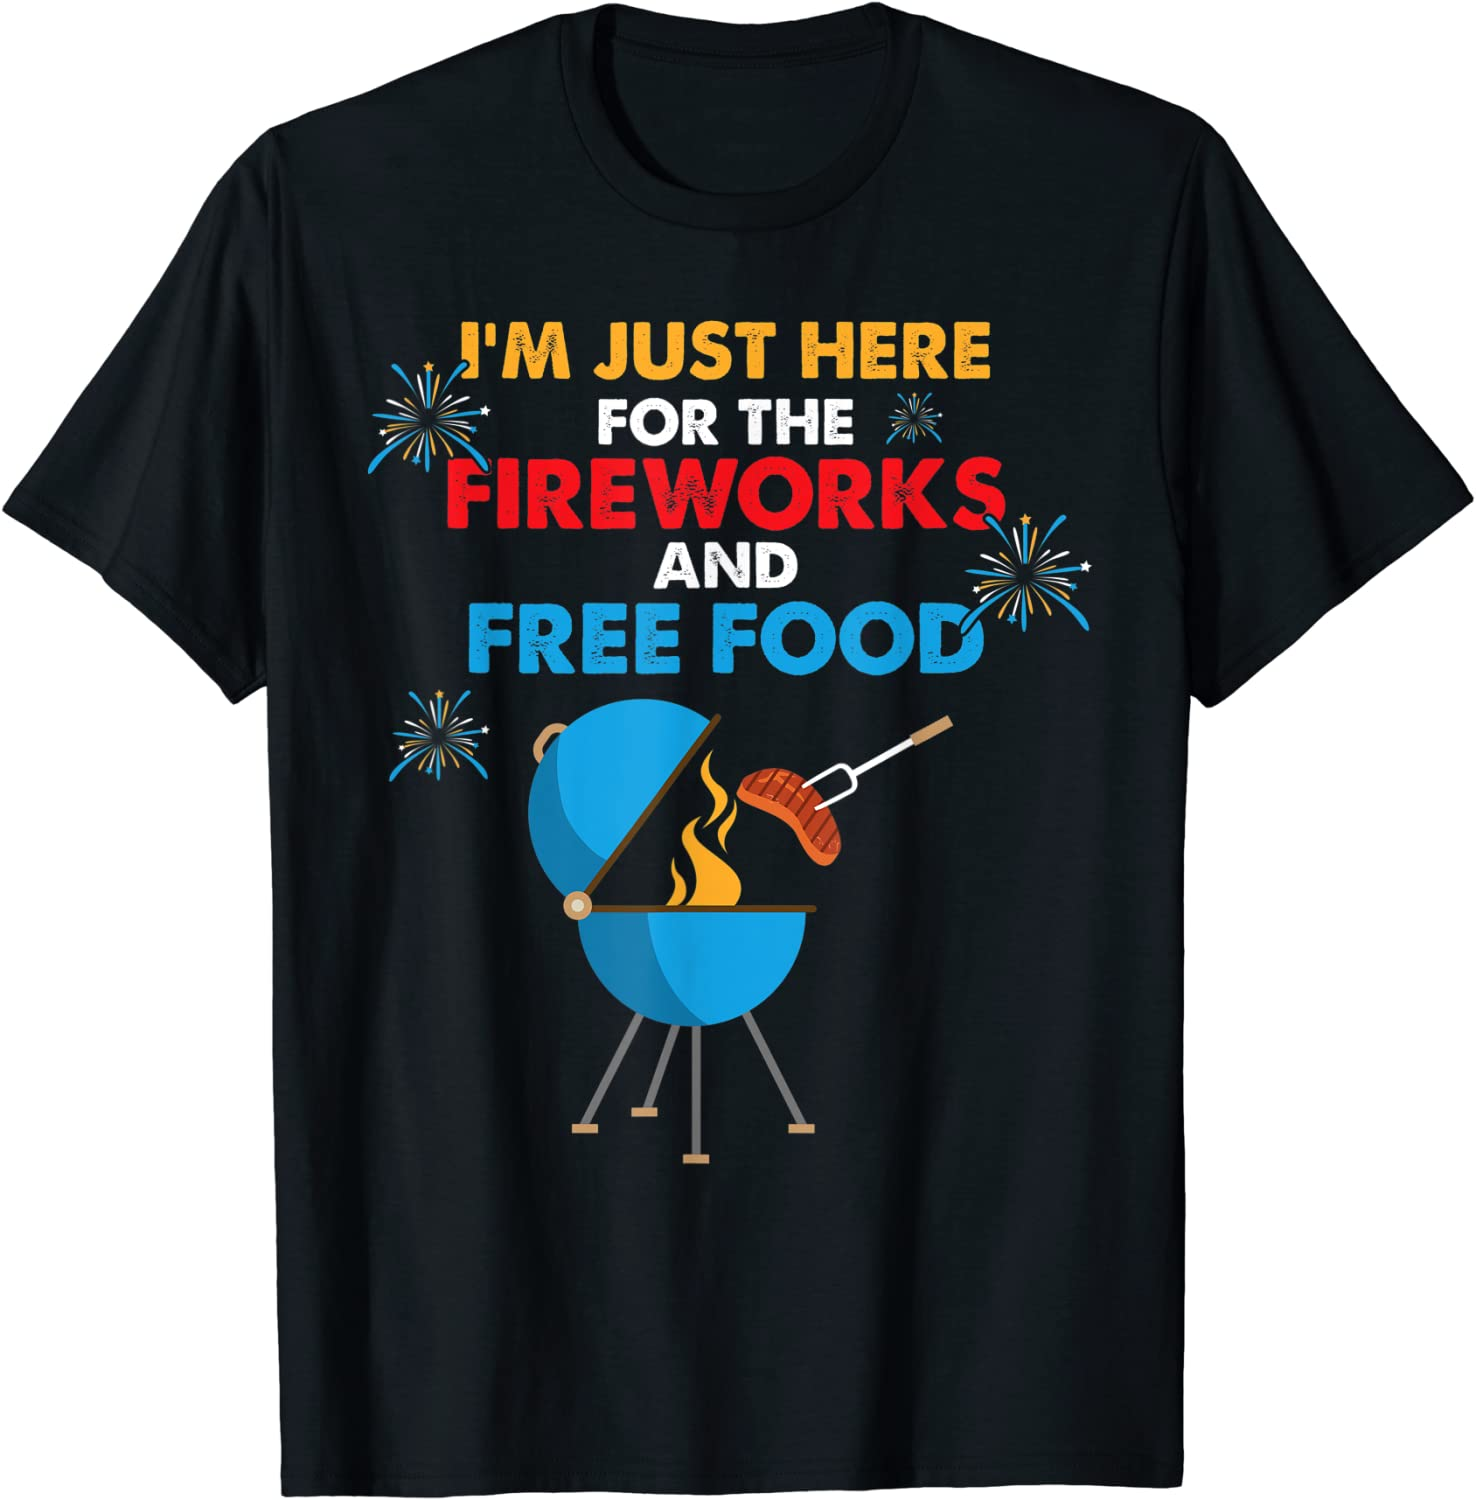 I'm Just Here For The Fireworks Free Food 4th July T-Shirt